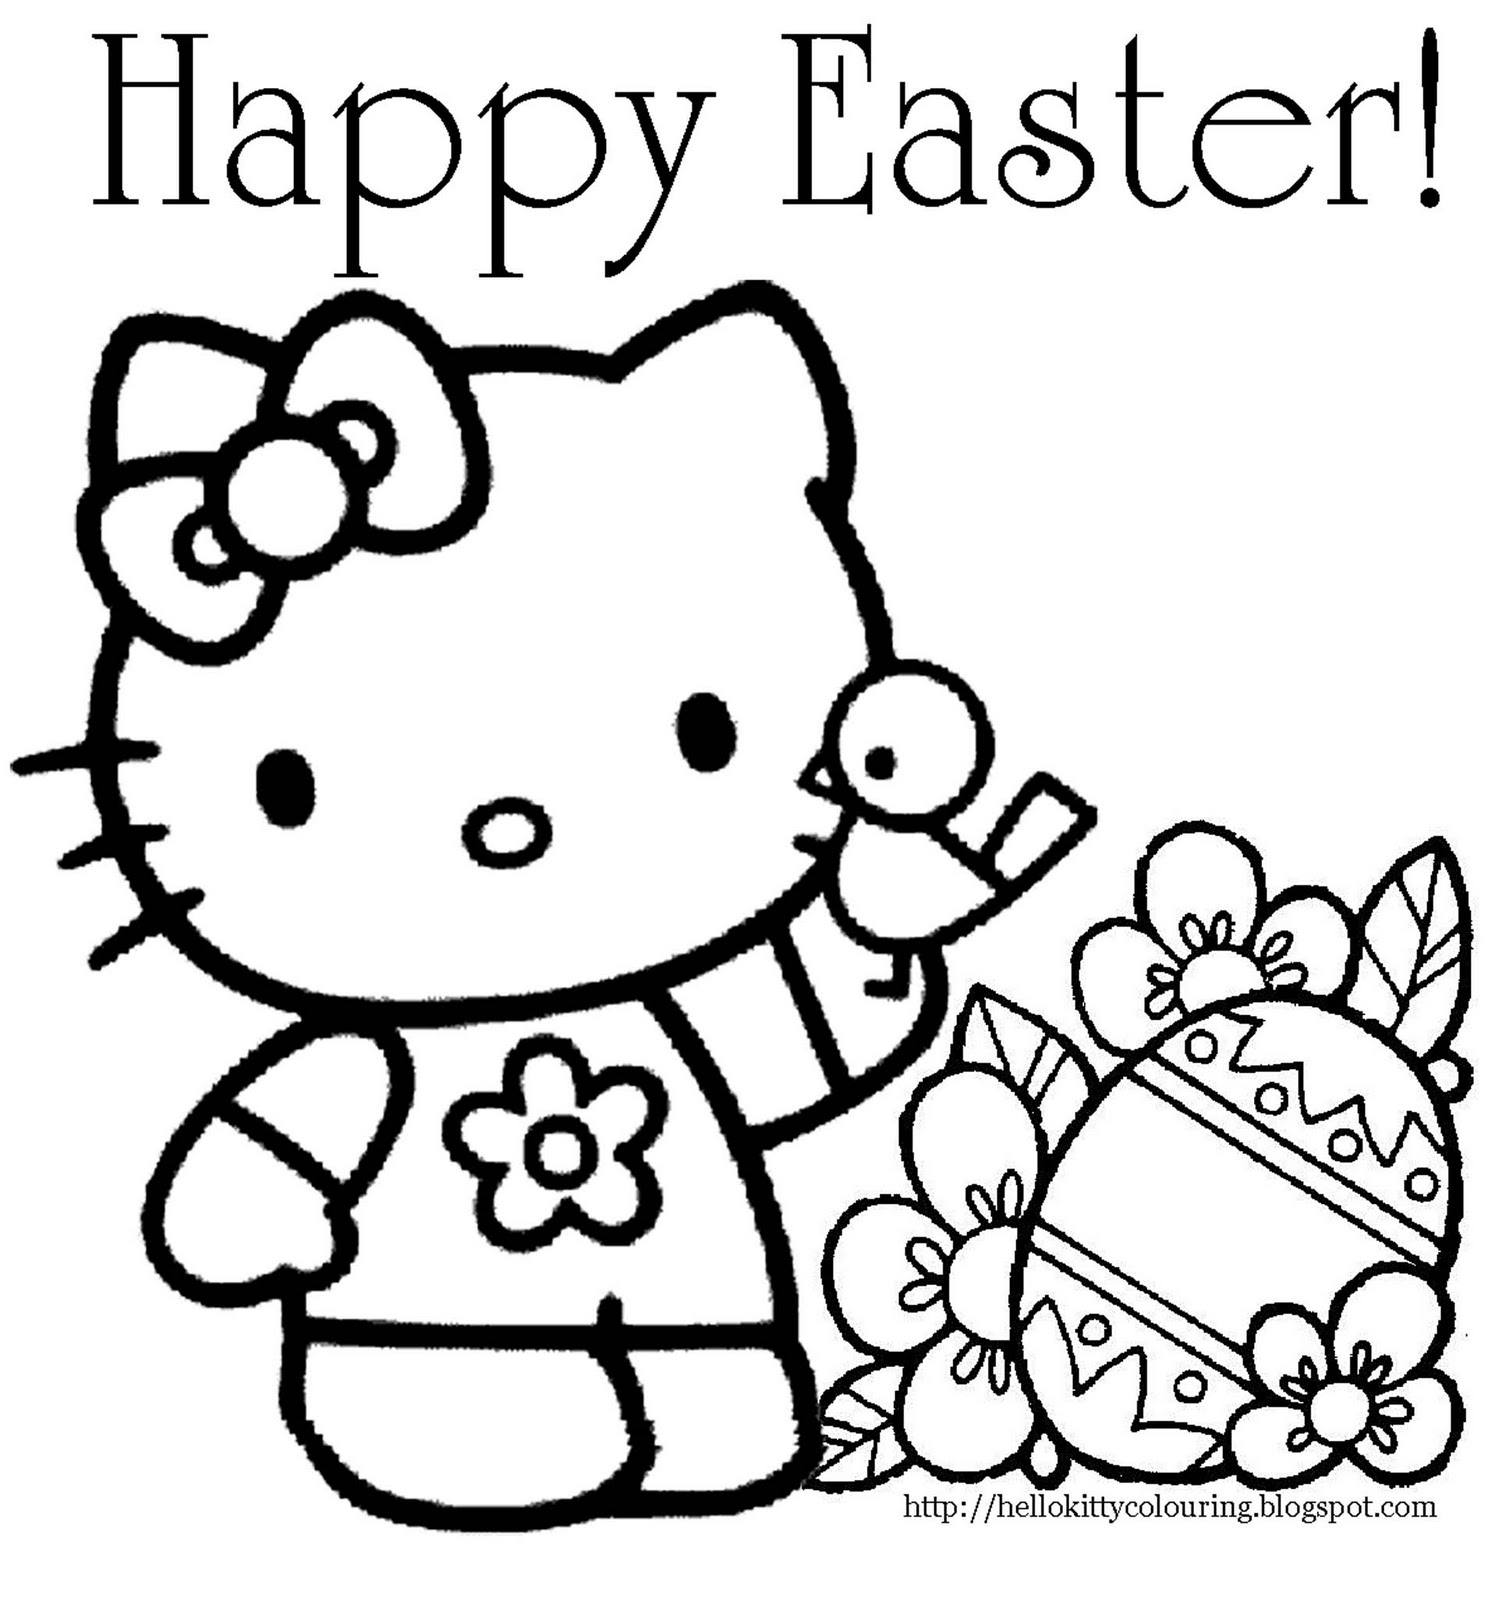 Free Printable Hello Kitty Coloring Pages AZ Coloring Pages - hello kitty coloring pages free printable